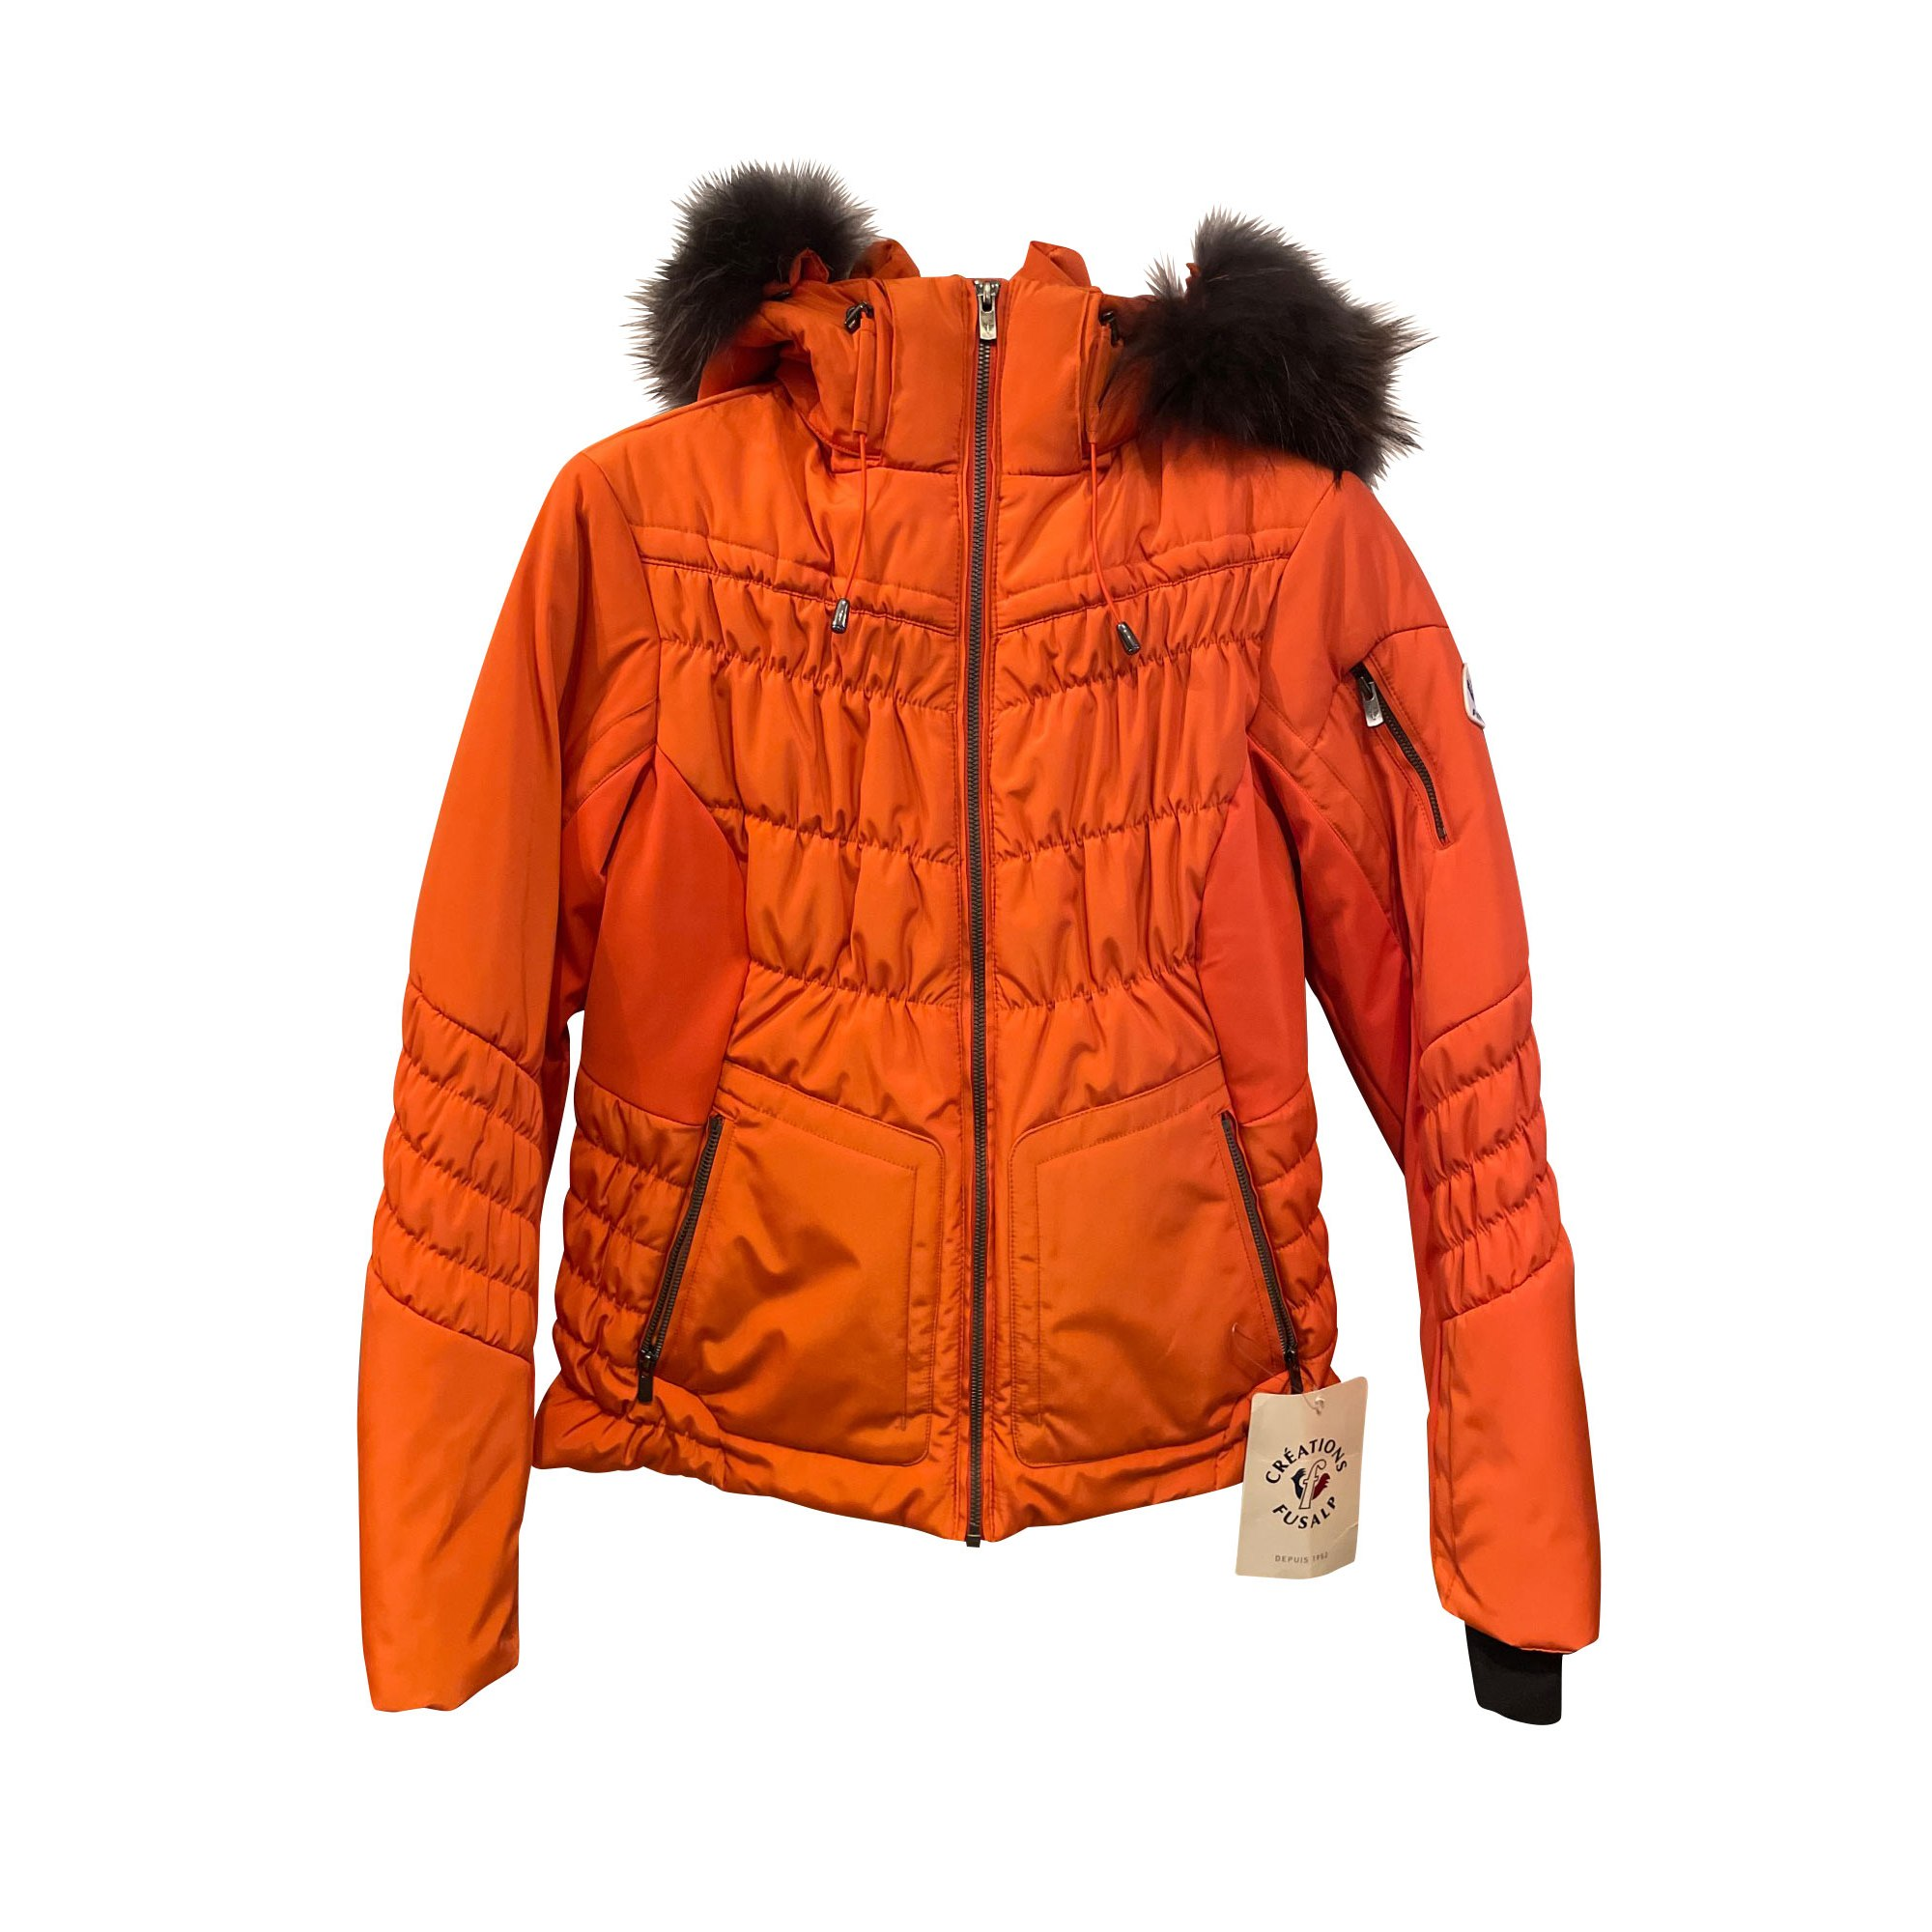 Veste FUSALP Orange